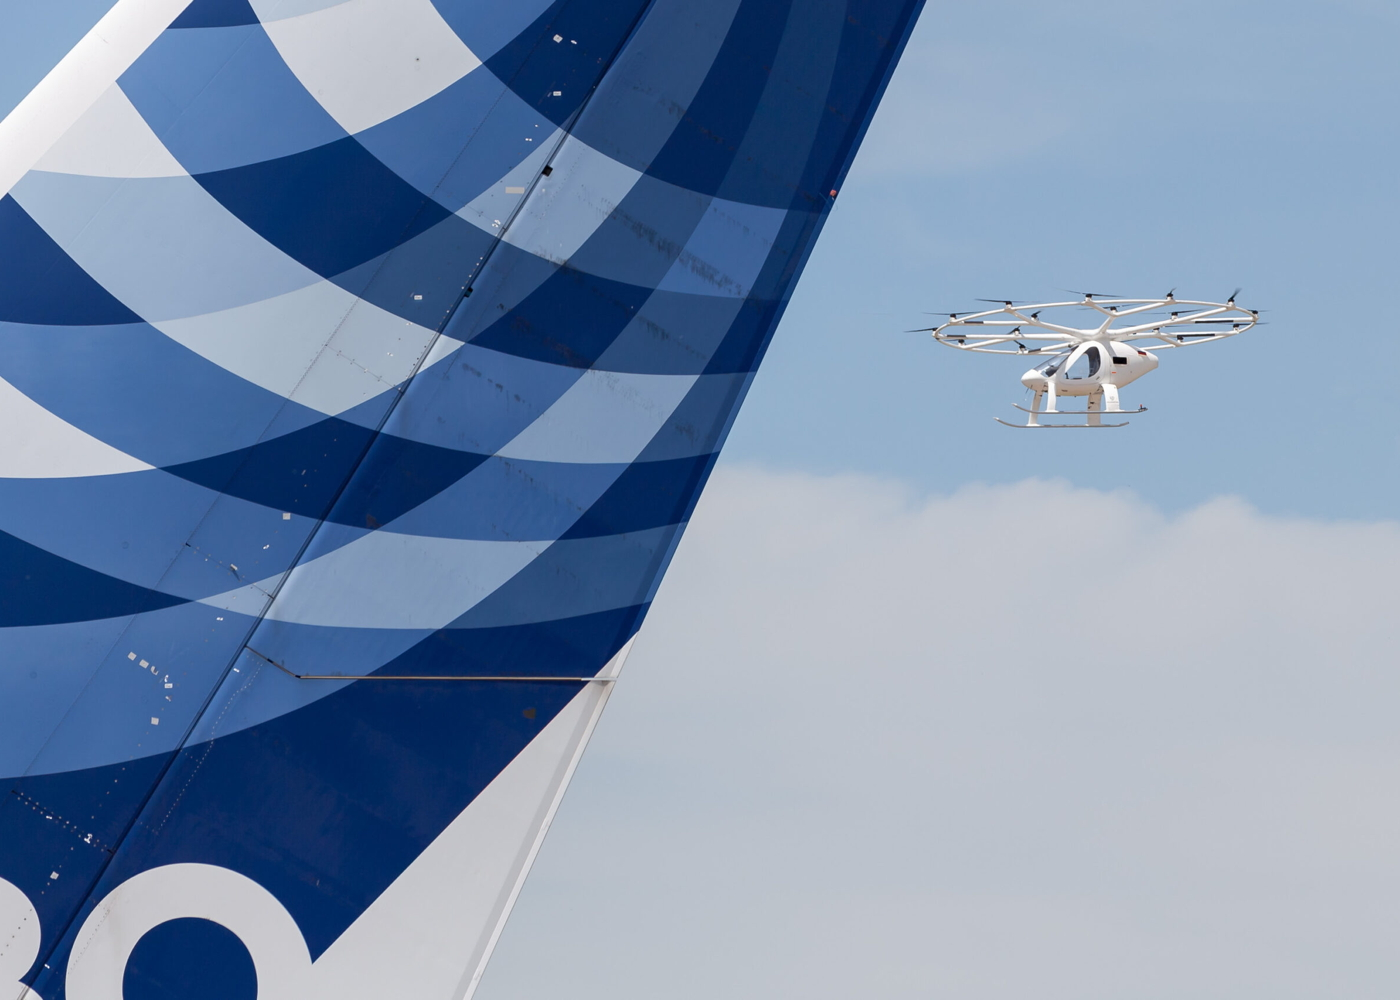 Volocopter Le Bourget